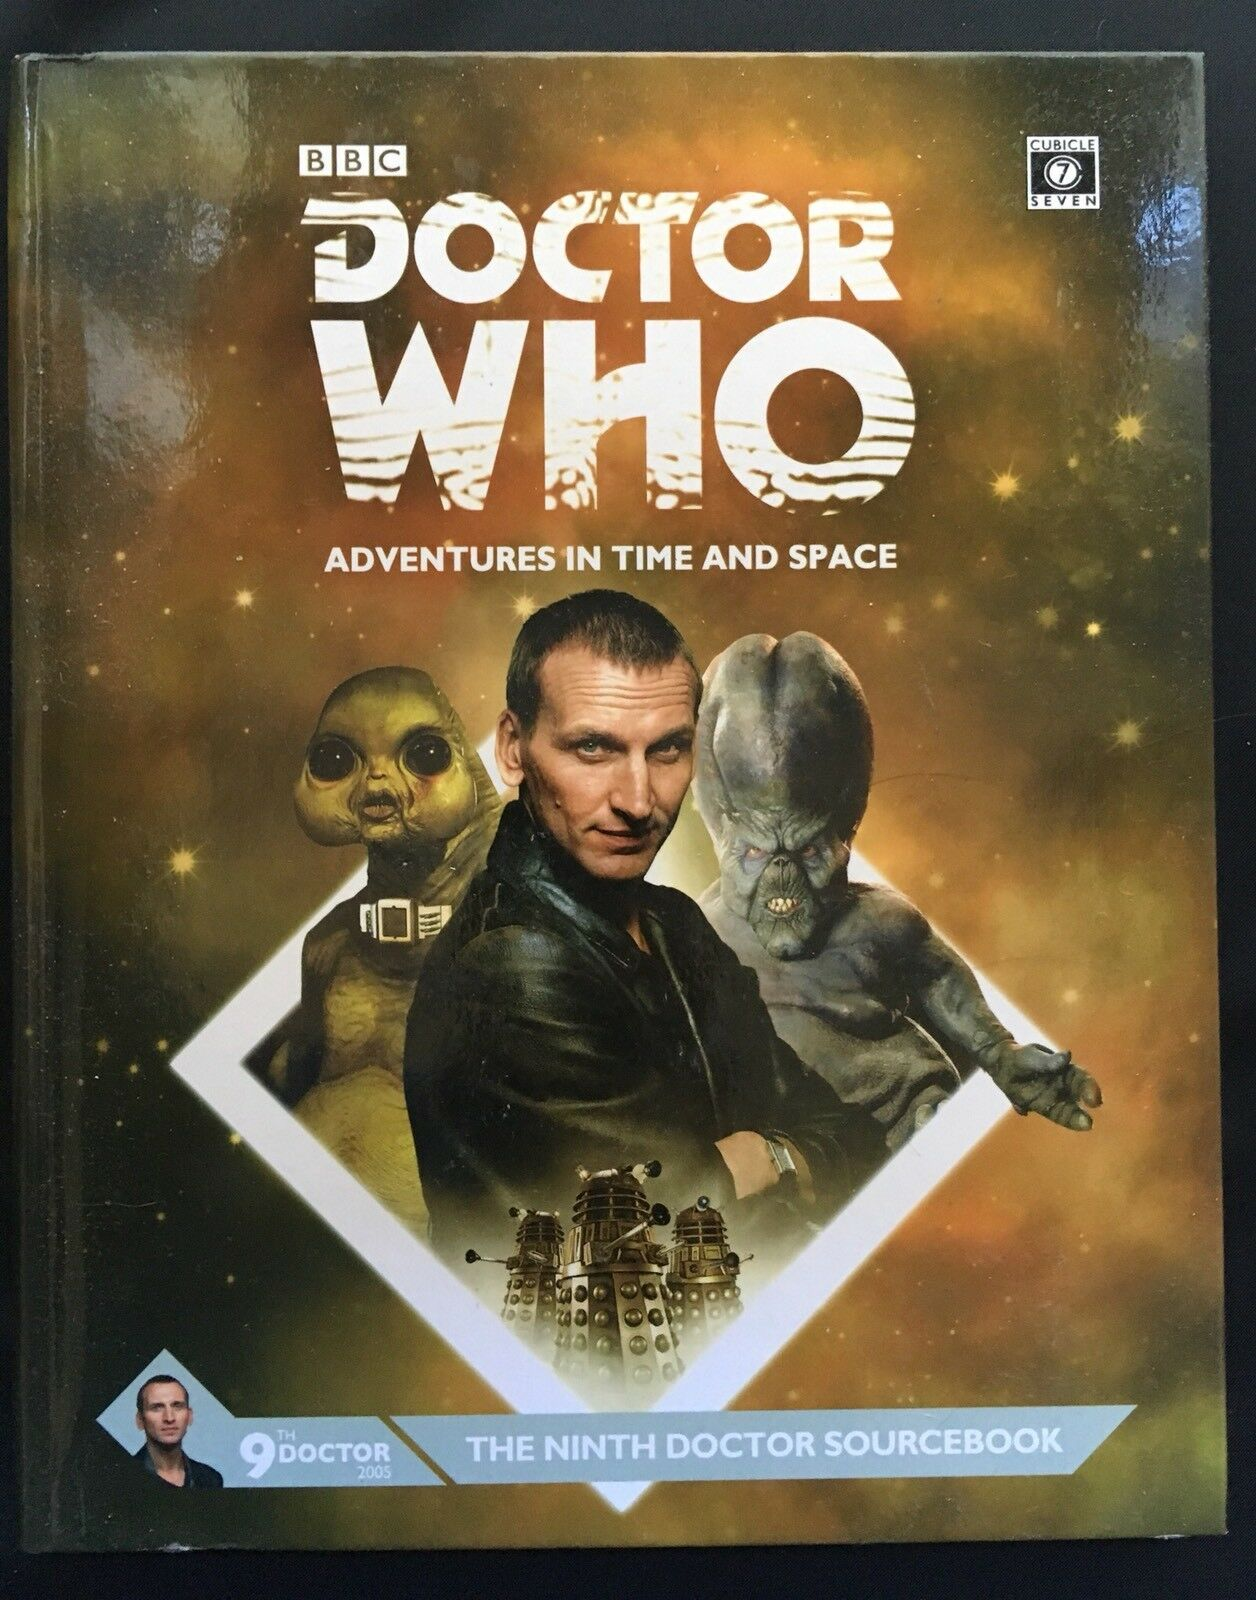 The Ninth Doctor Sourcebook - Cubicle 7 - Doctor Who RPG CB71118